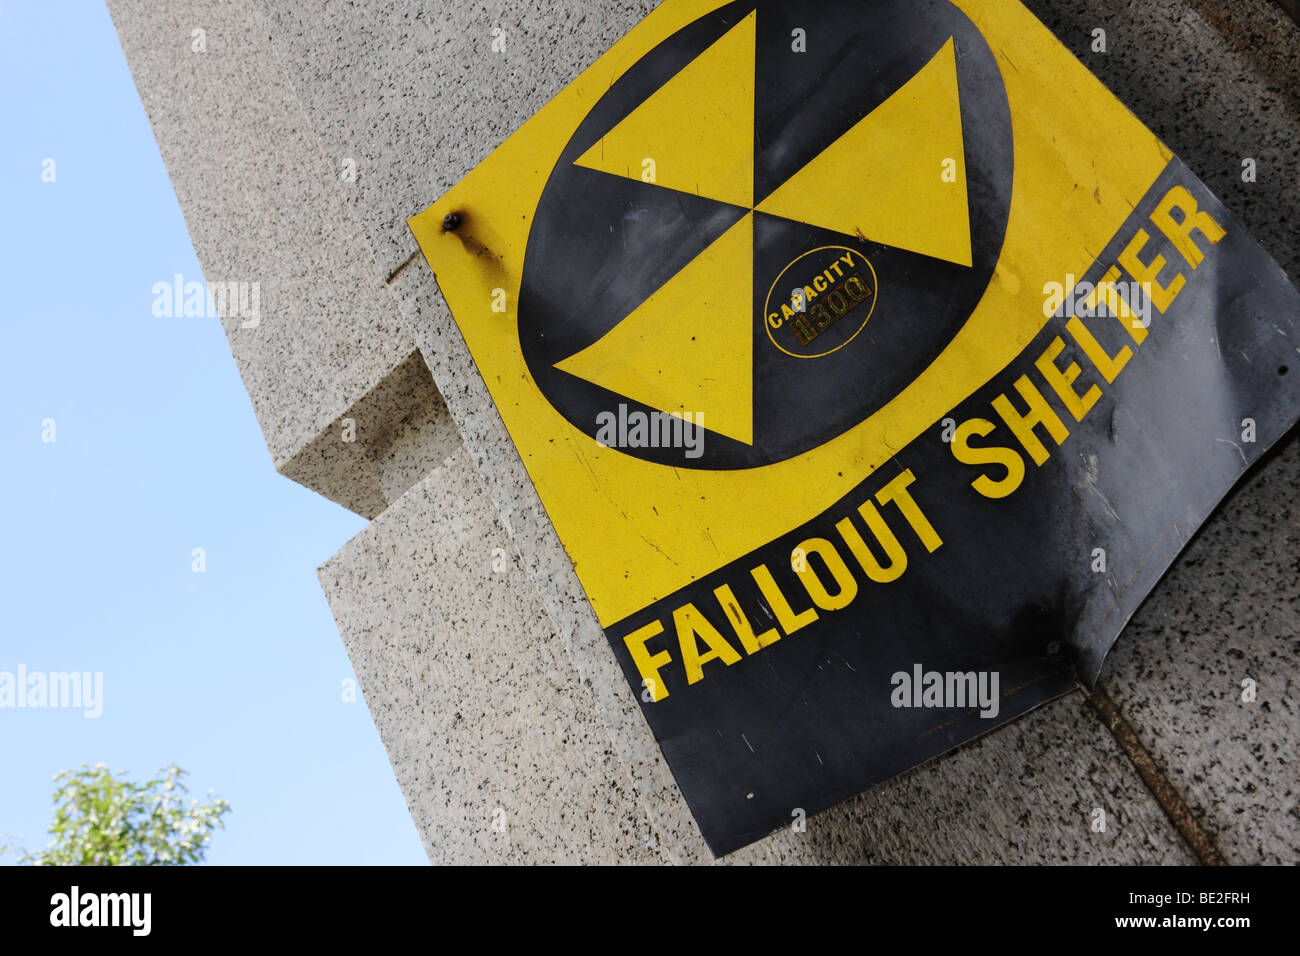 Fallout Shelter, USA Stock Photo